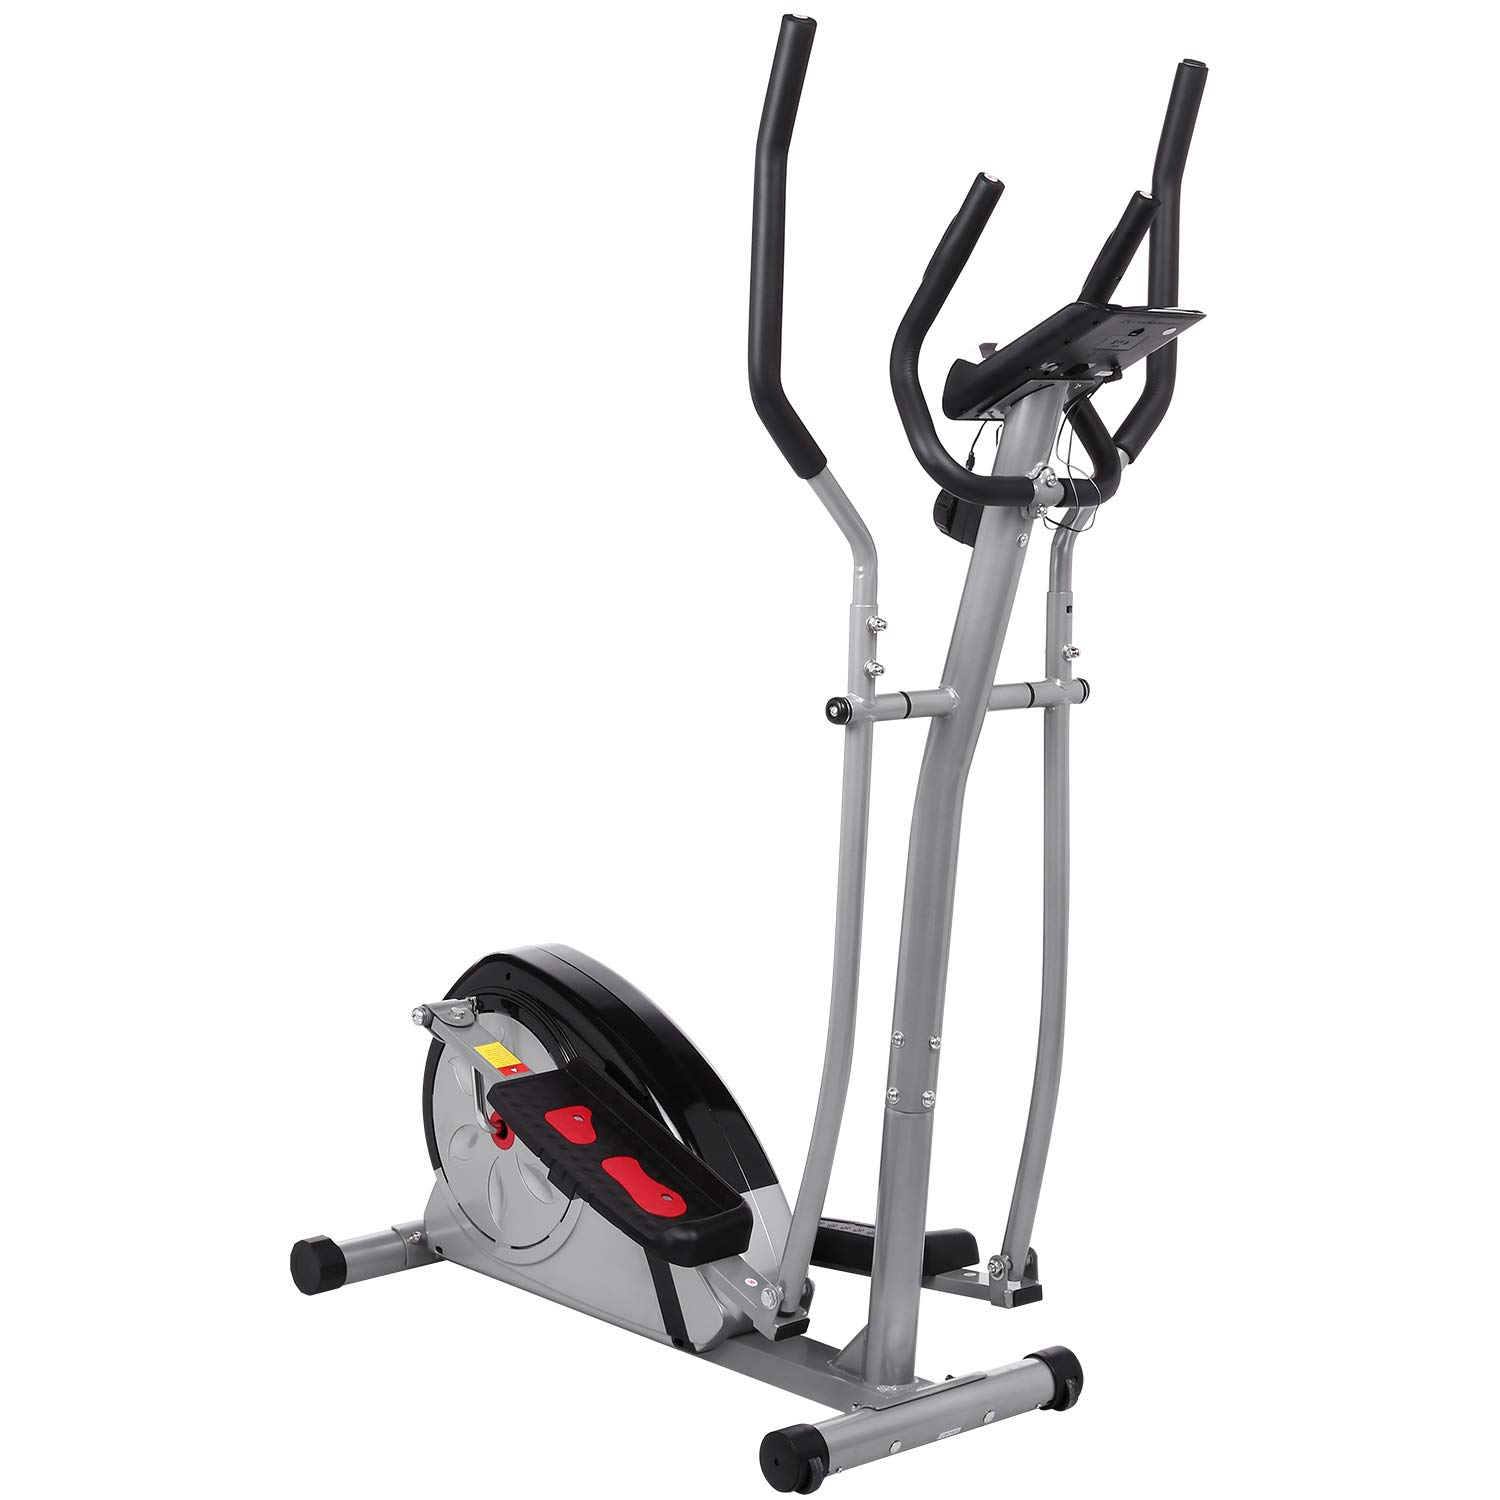 Fast 88 Portable Elliptical Machine Fitness Workout Cardio Training Machine, Magnetic Control Mute Elliptical Trainer with LCD Monitor,Top Levels Elliptical Machine Trainer (Grey) by Fast 88 (Image #3)